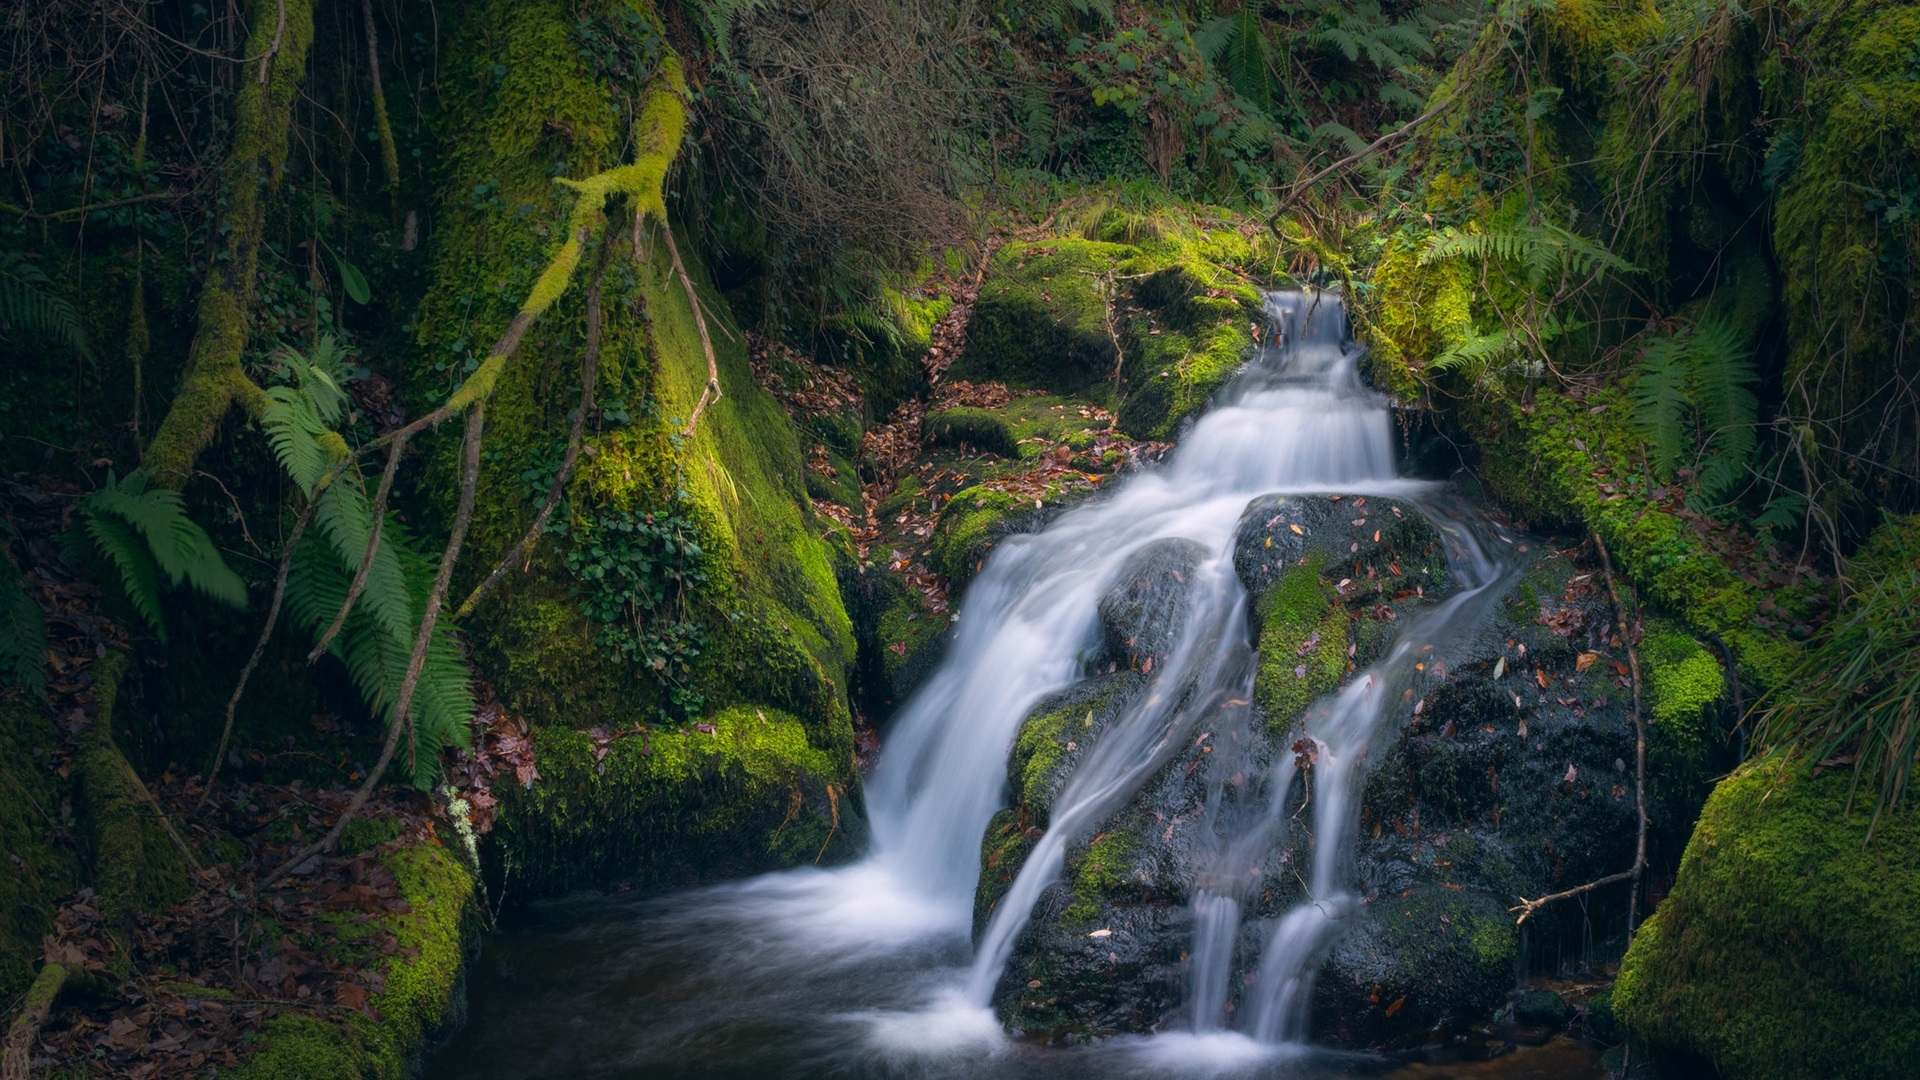 Wallpaper Moss Stream Waterfall 1920x1200 Hd Picture Image